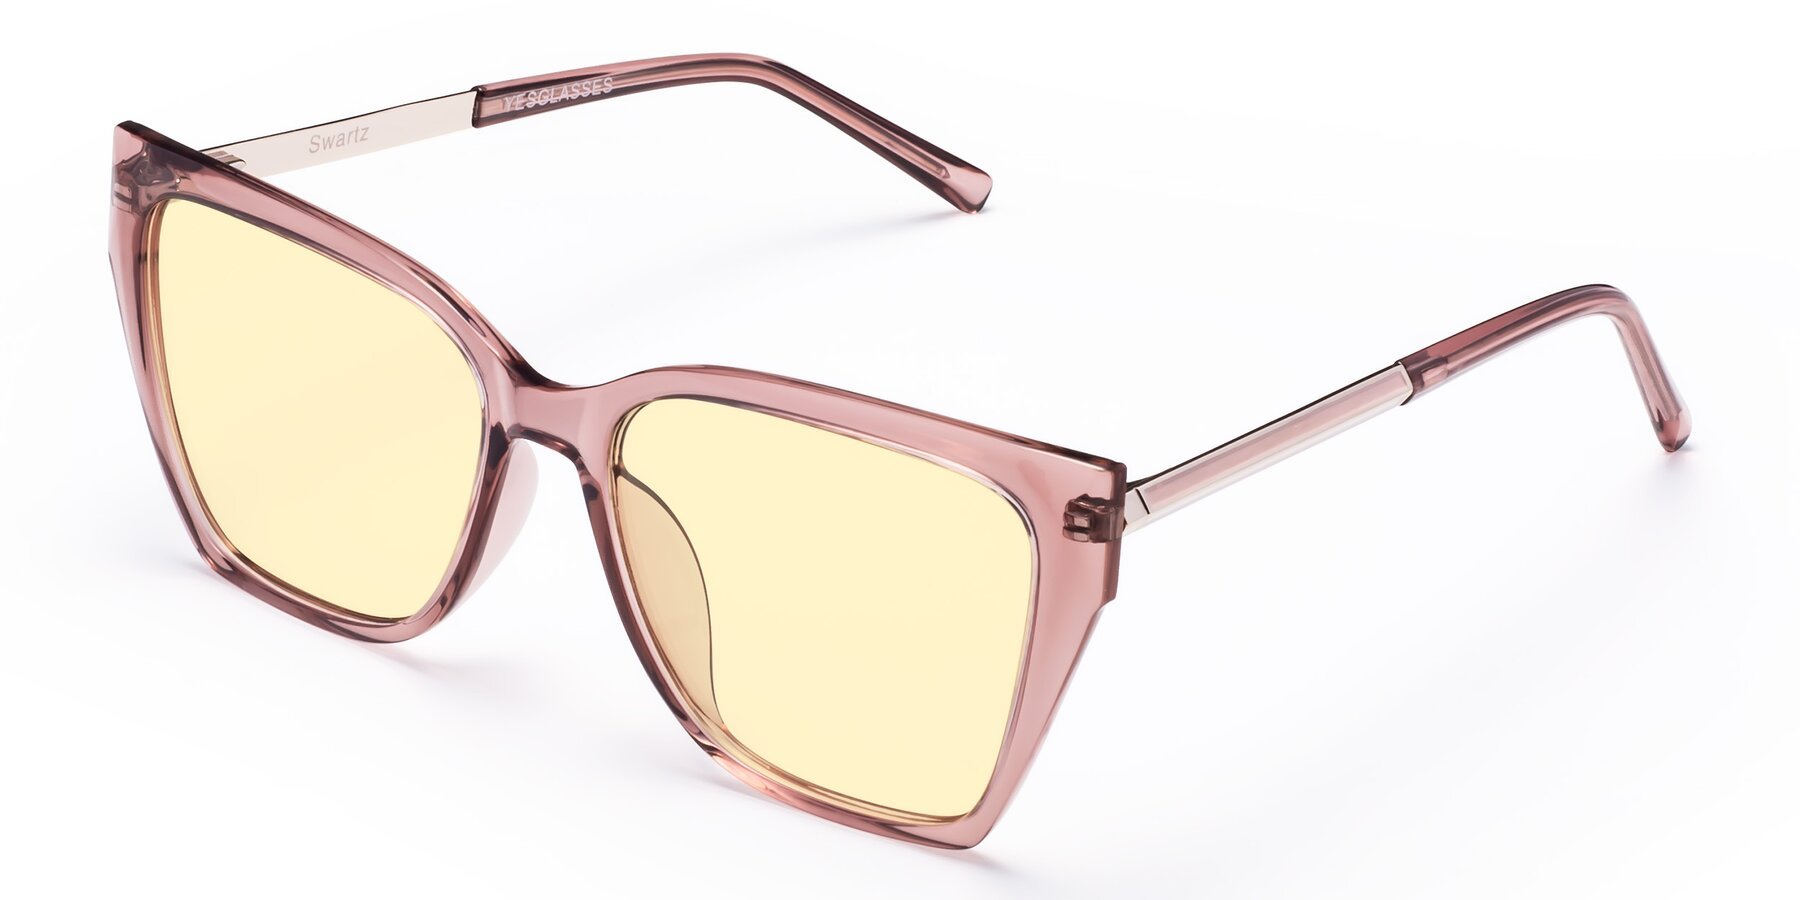 Angle of Swartz in Grape with Light Yellow Tinted Lenses